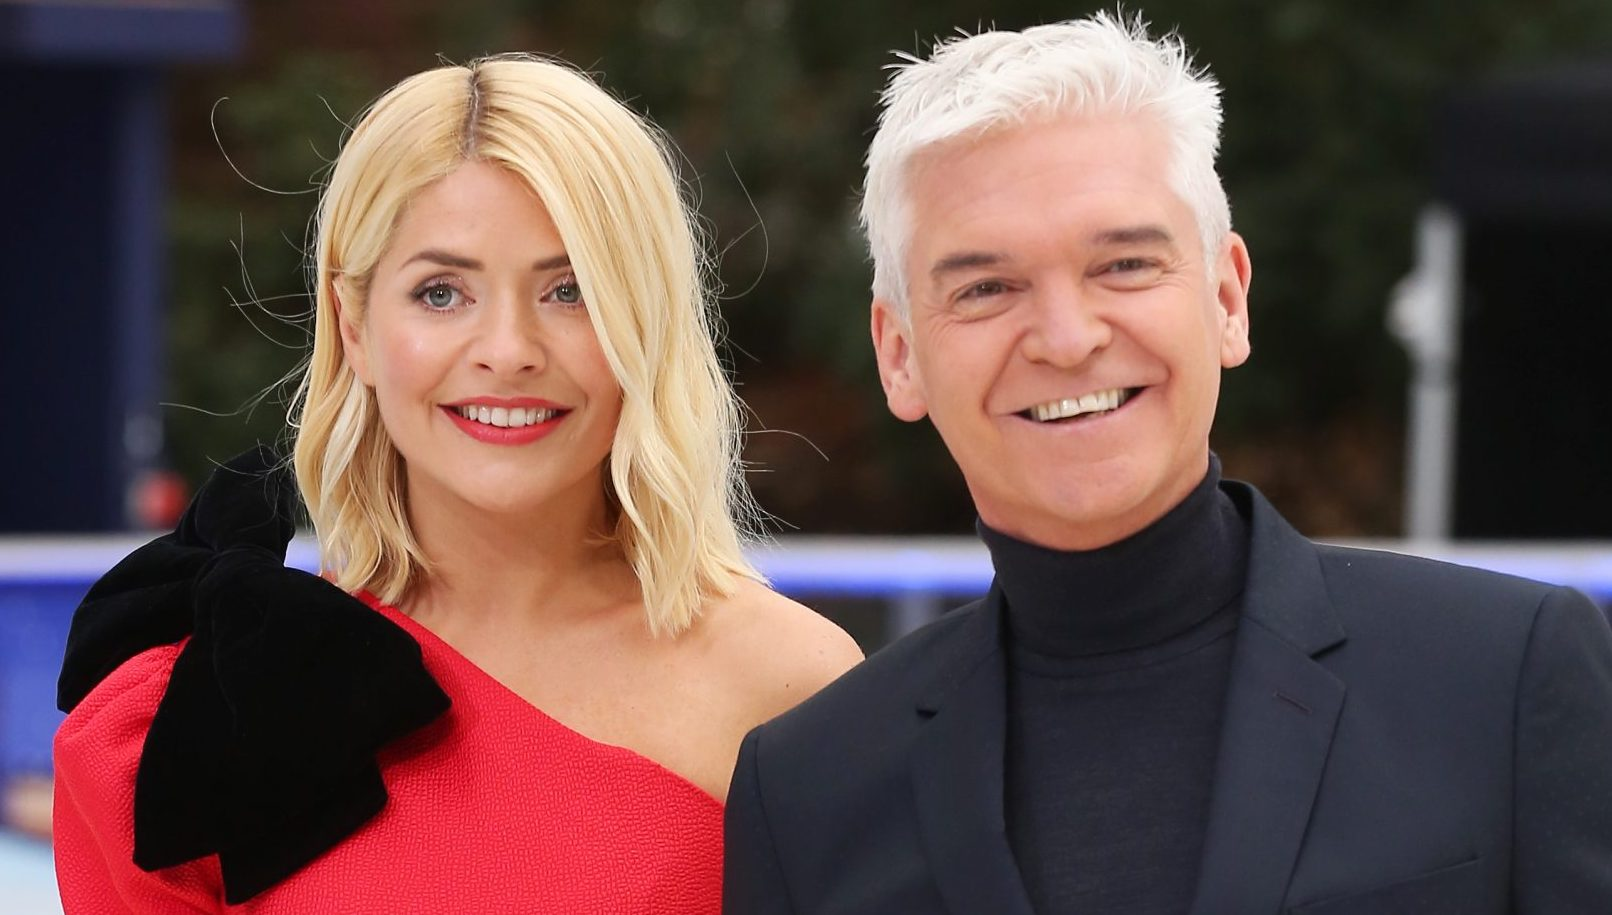 Holly Willoughby throws her support behind Phillip Schofield amid This Morning 'feud' rumours